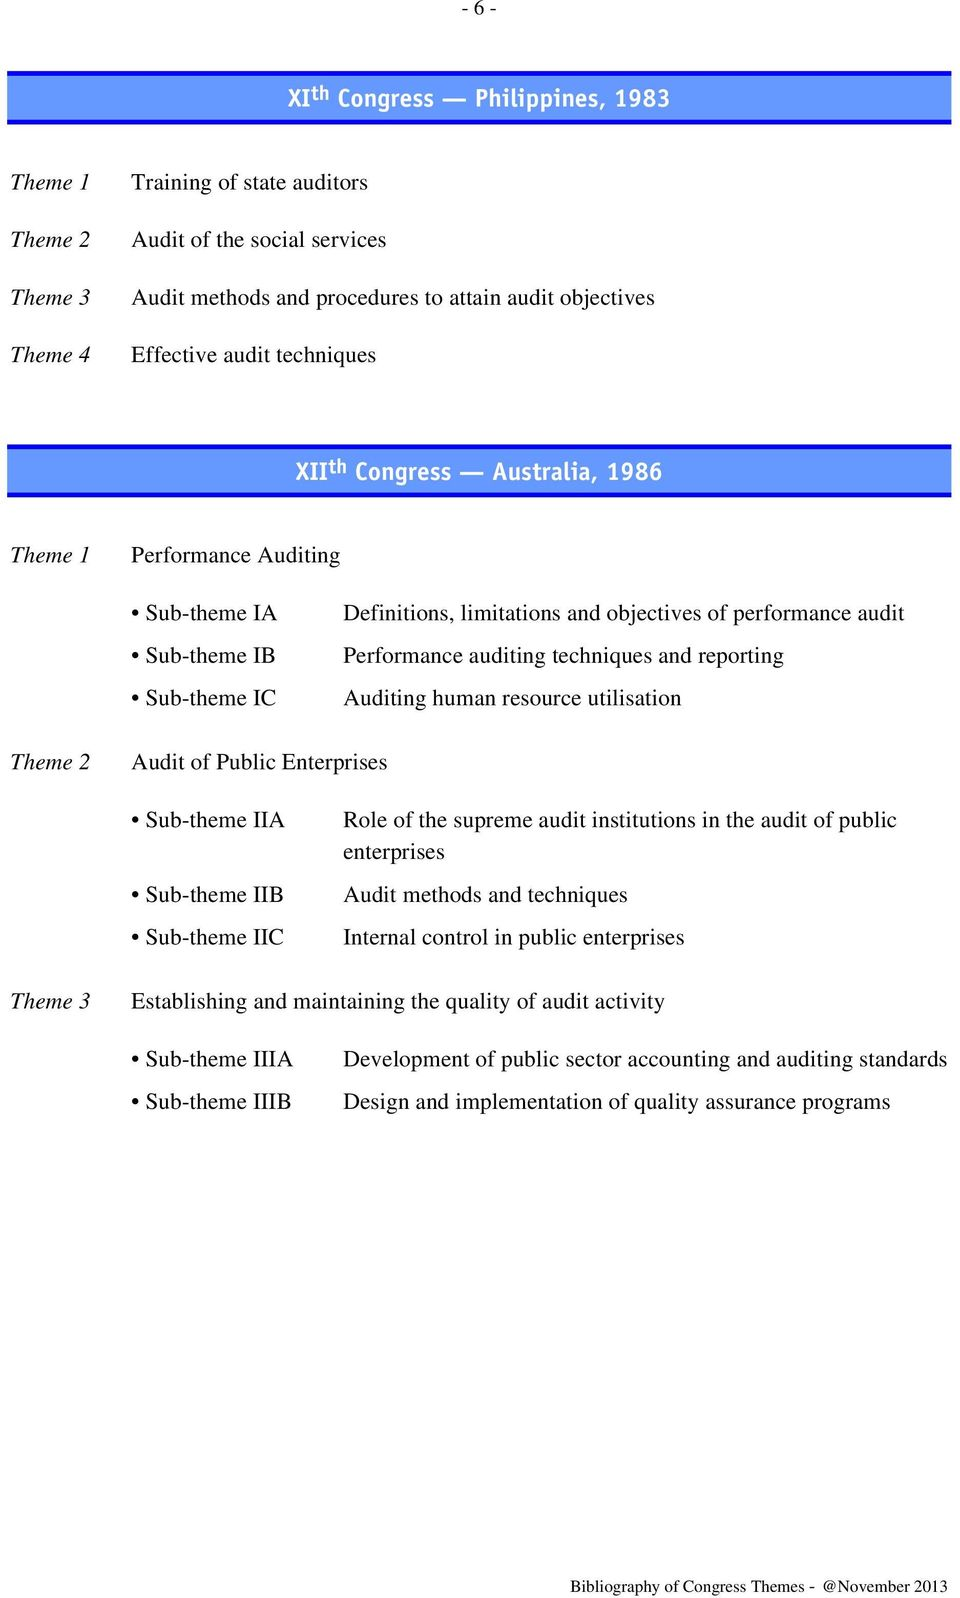 resource utilisation Audit of Public Enterprises Sub-theme IIA Sub-theme IIB Sub-theme IIC Role of the supreme audit institutions in the audit of public enterprises Audit methods and techniques